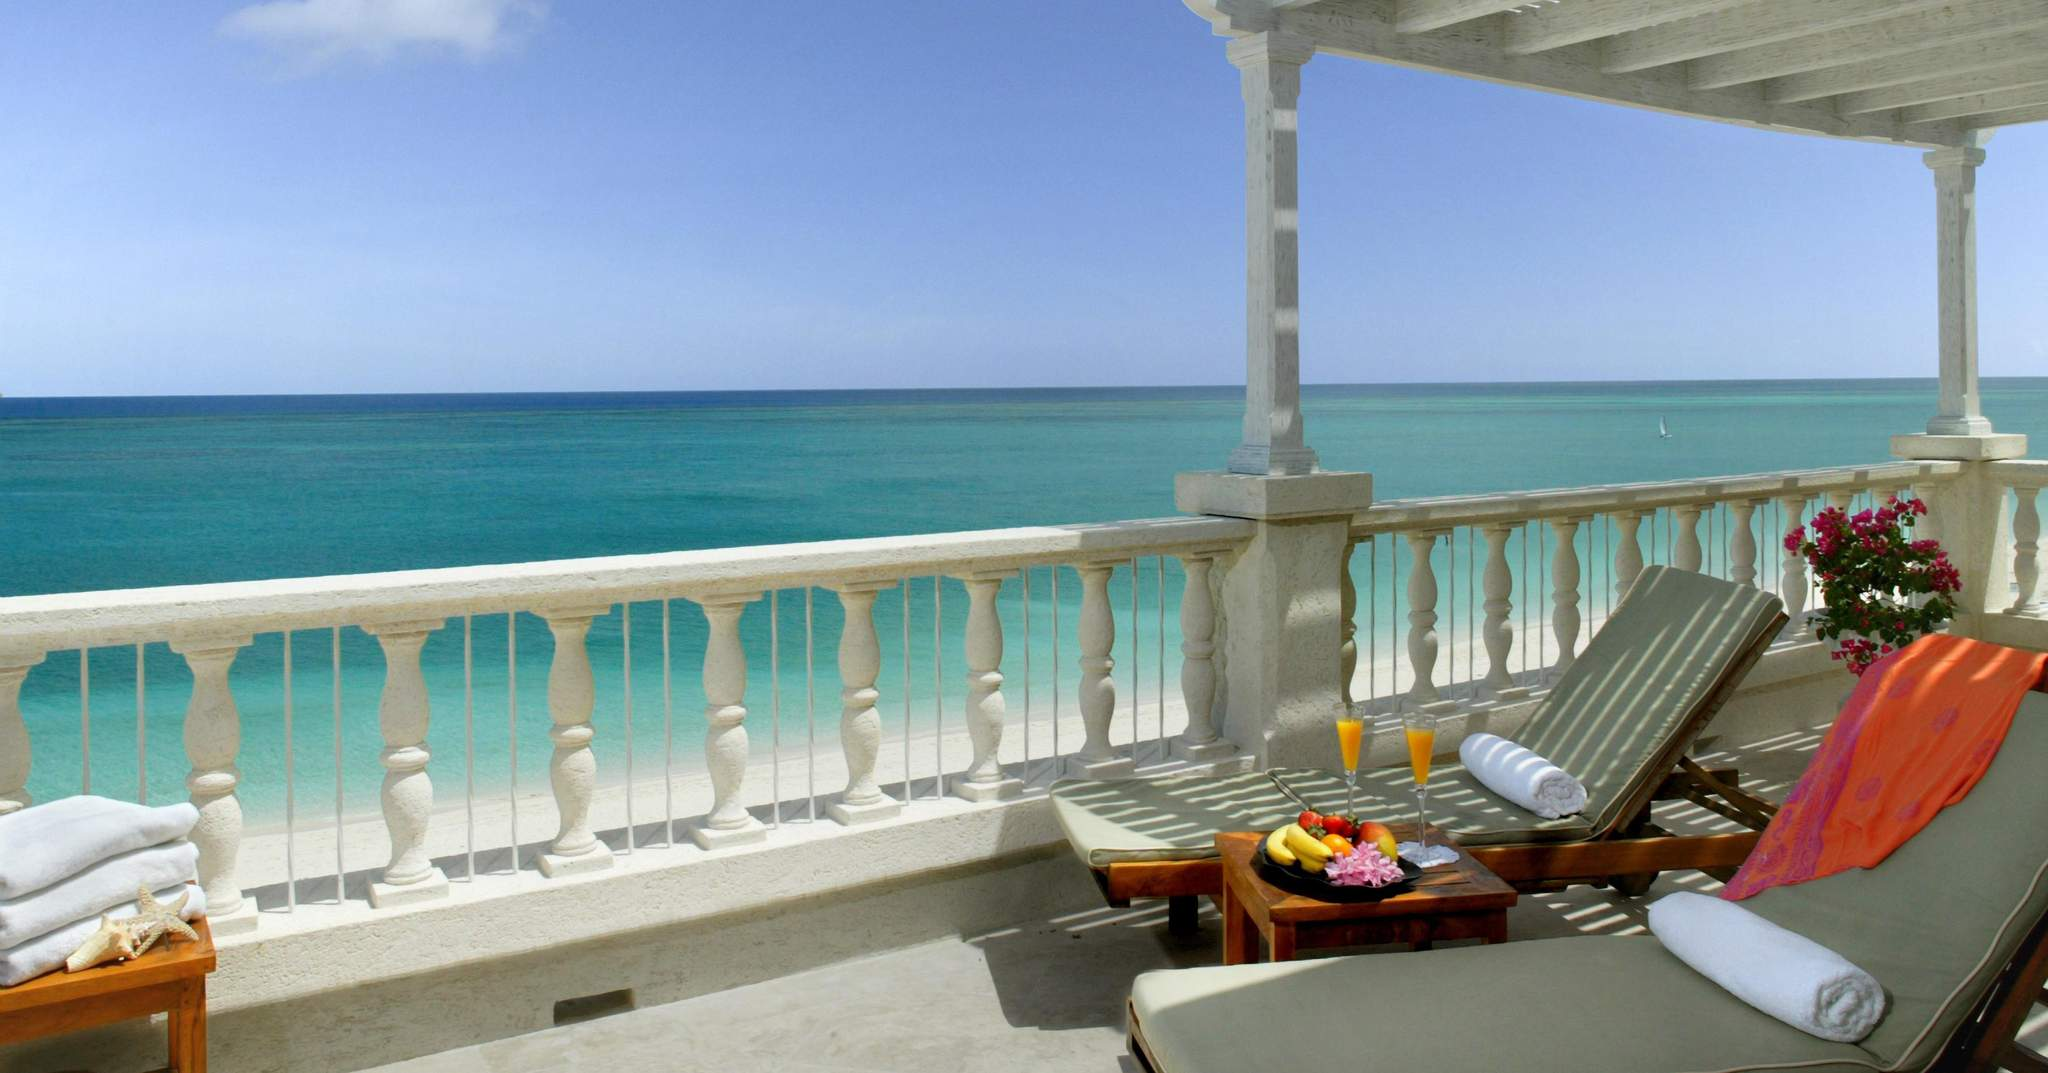 The Palms, Turks and Caicos